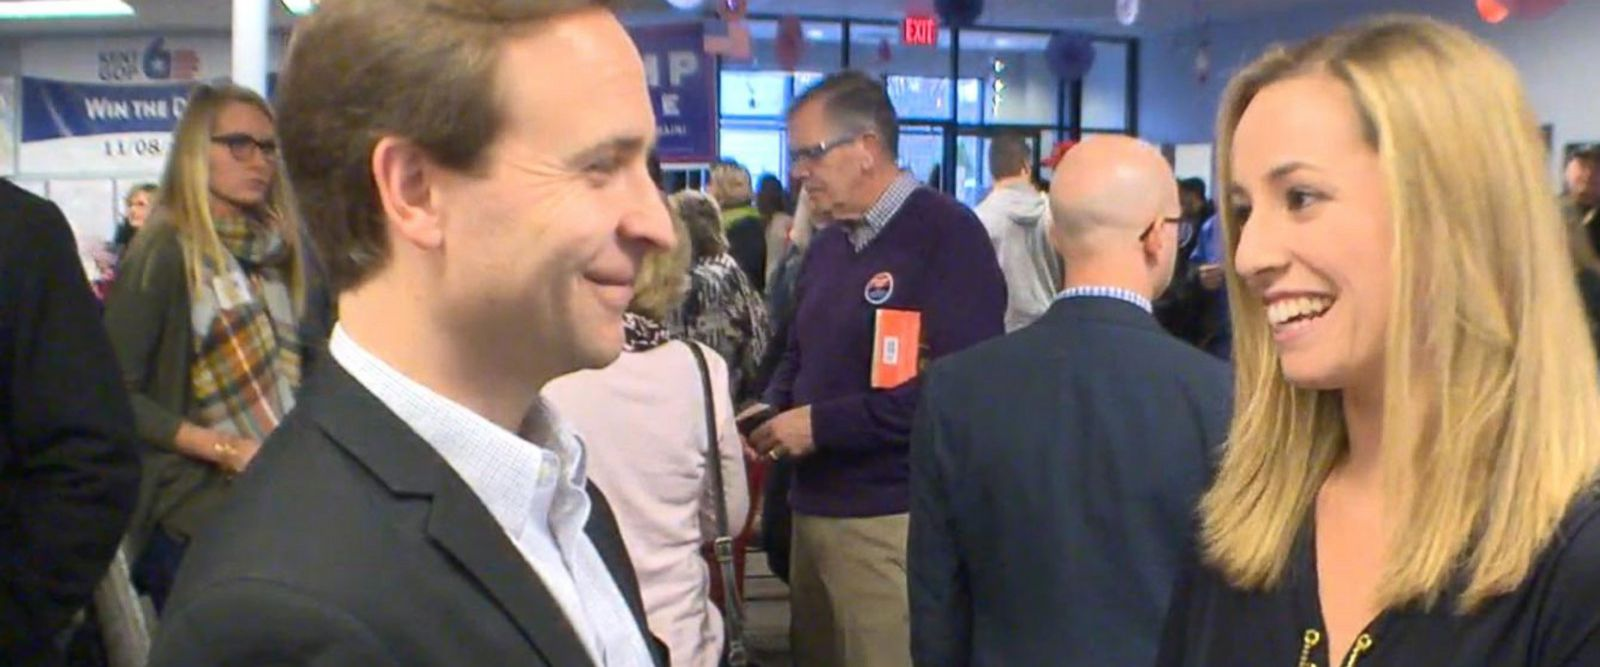 VIDEO: Michigan Lt. Governor, Brian Calley, at Grand Rapids Watch Party